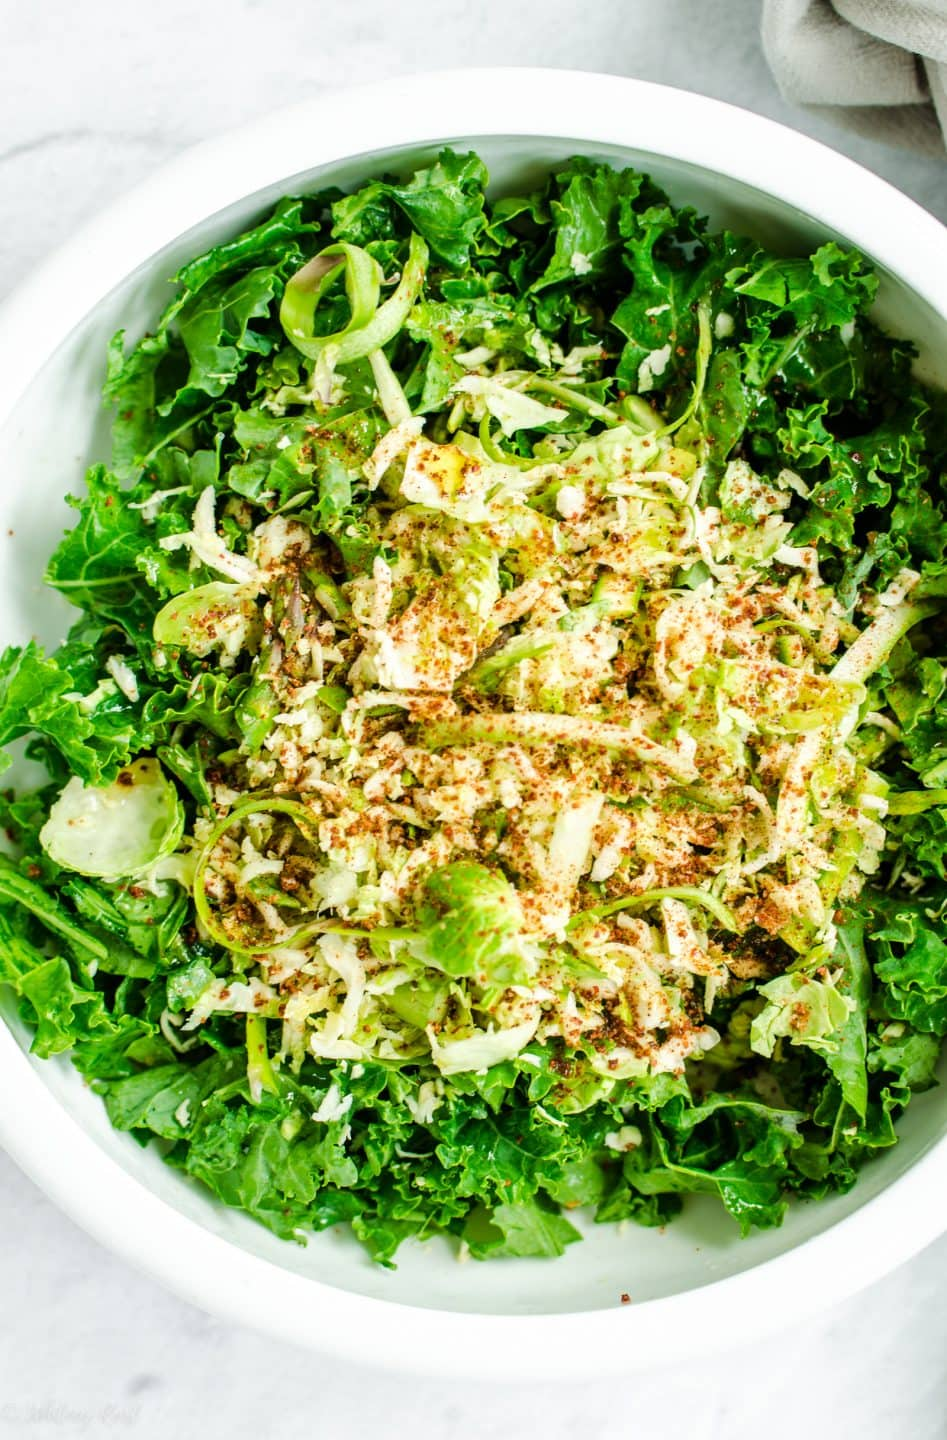 Chopped kale and shaved brussels sprouts in a white bowl.